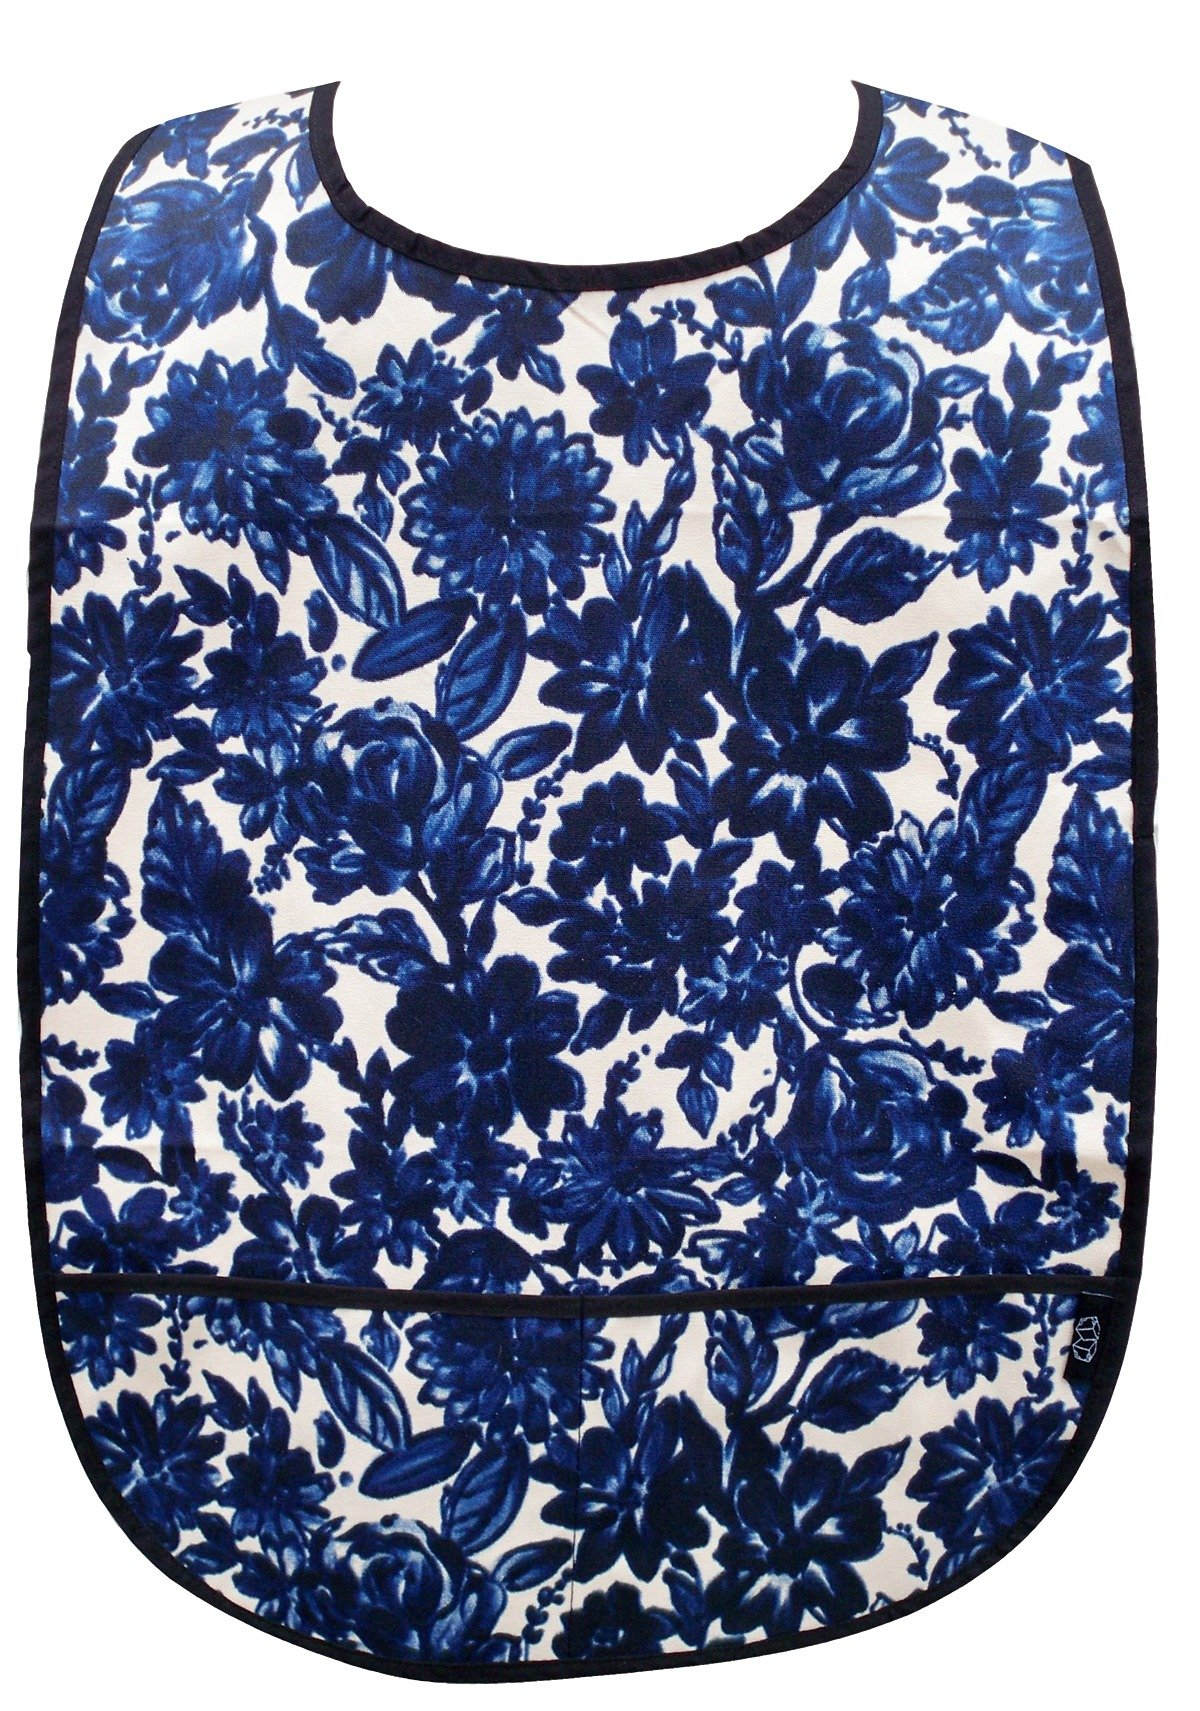 Adult Clothing Protector with Front Pockets (Navy Floral)